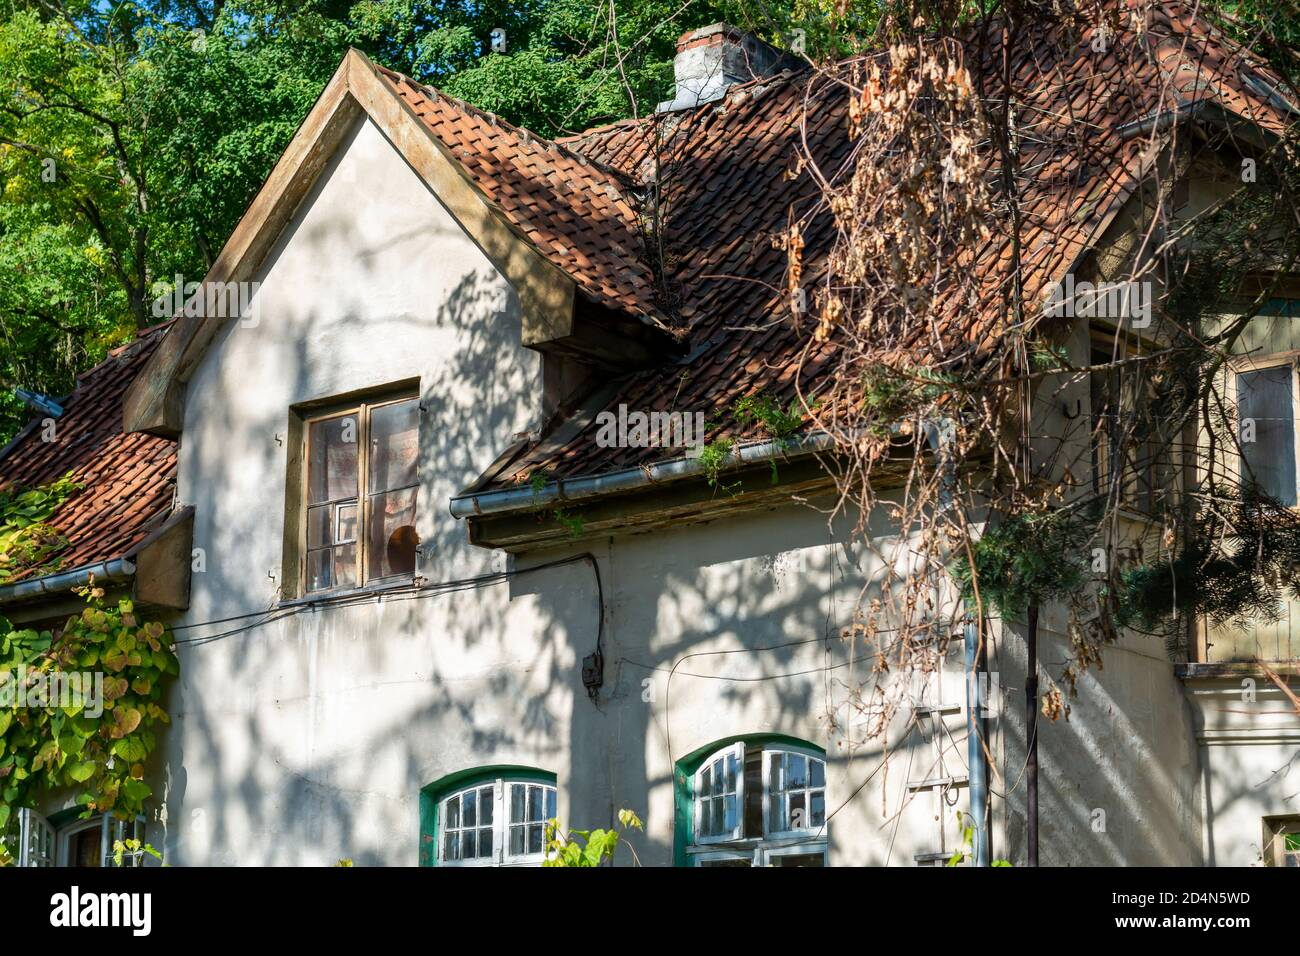 Tiled roof of an old house from the 19th century. Wooden windows without restoration on the facade of a cottage in the forest. Stock Photo